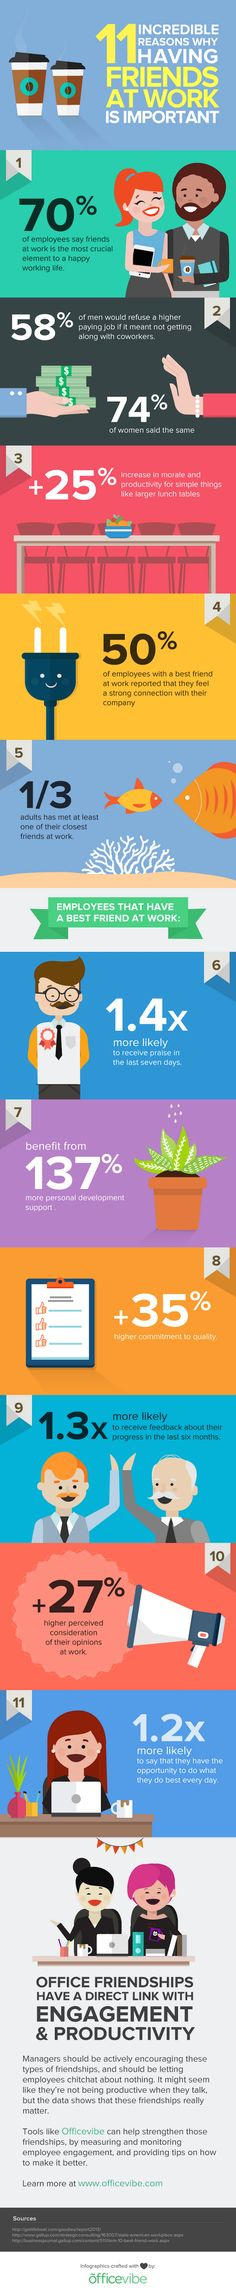 Business and management infographic & data visualisation Infographic: How work friendships improve employee engagement Engagement Des Employés, Employee Engagement, Engagement Outfits, Work Friends, Need Friends, Leadership, Chart Infographic, Marca Personal, Startup